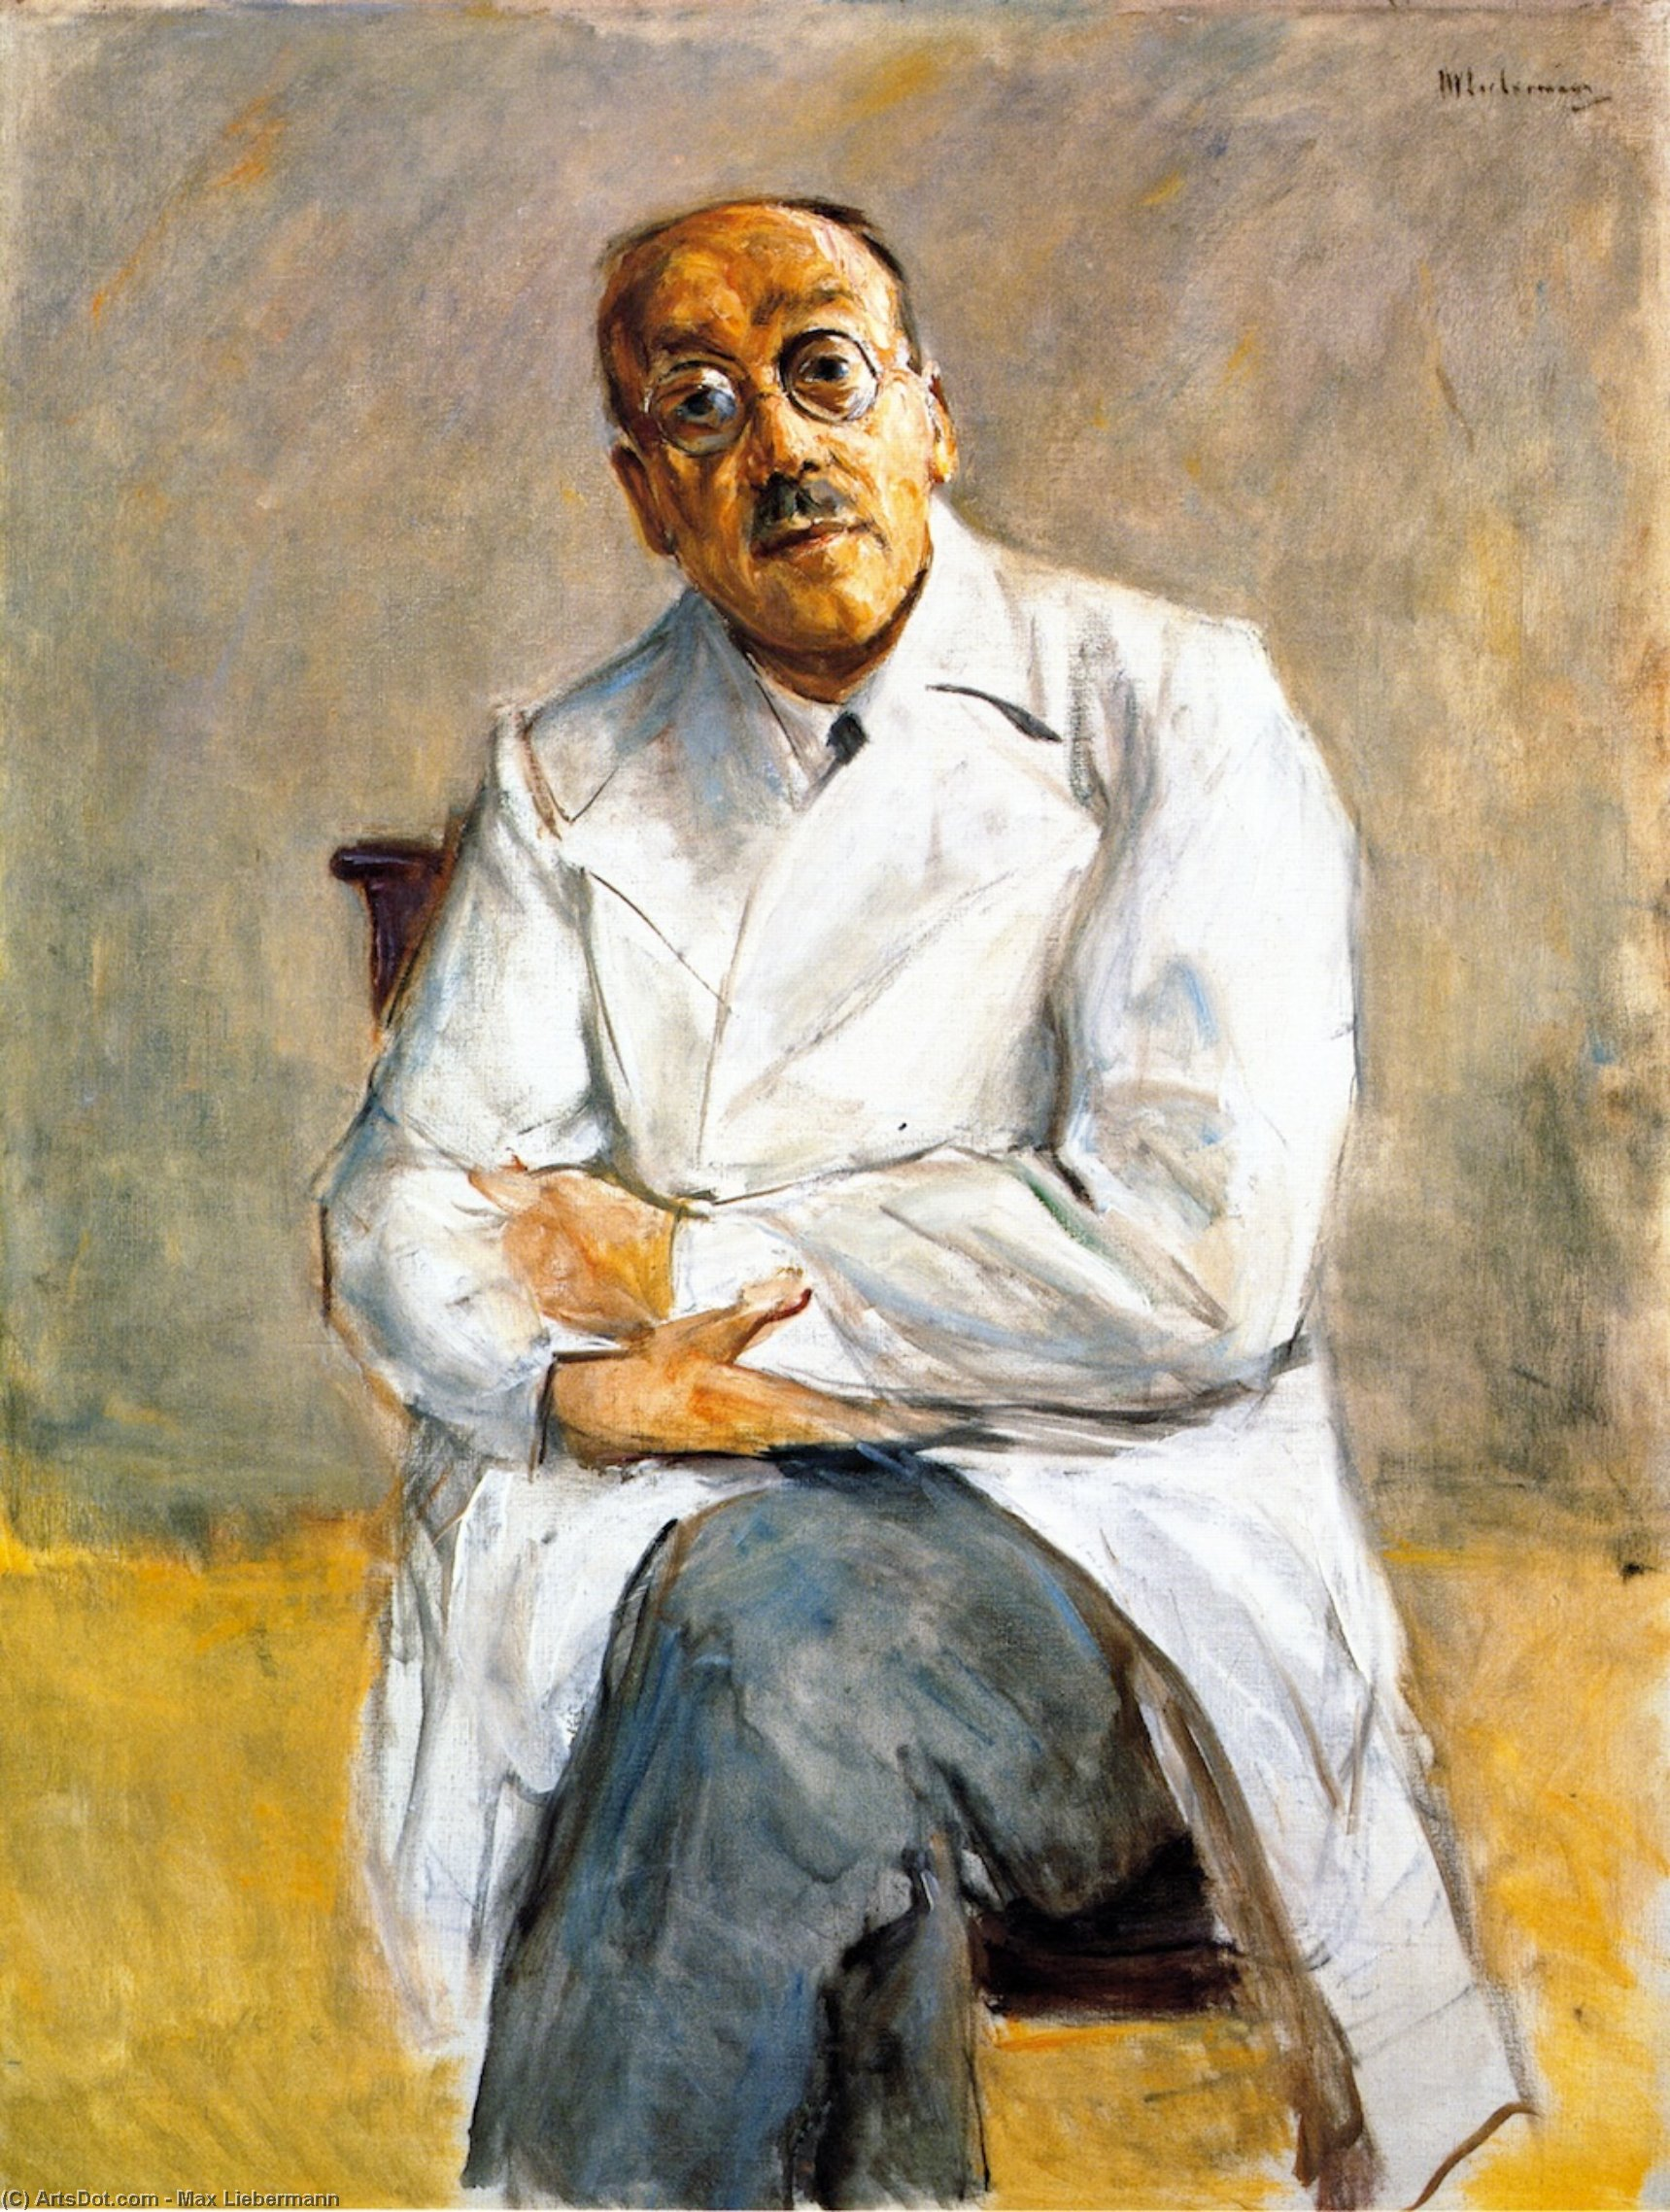 Wikioo.org - The Encyclopedia of Fine Arts - Painting, Artwork by Max Liebermann - The Surgeon Dr. Ferdinand Sauerbruch